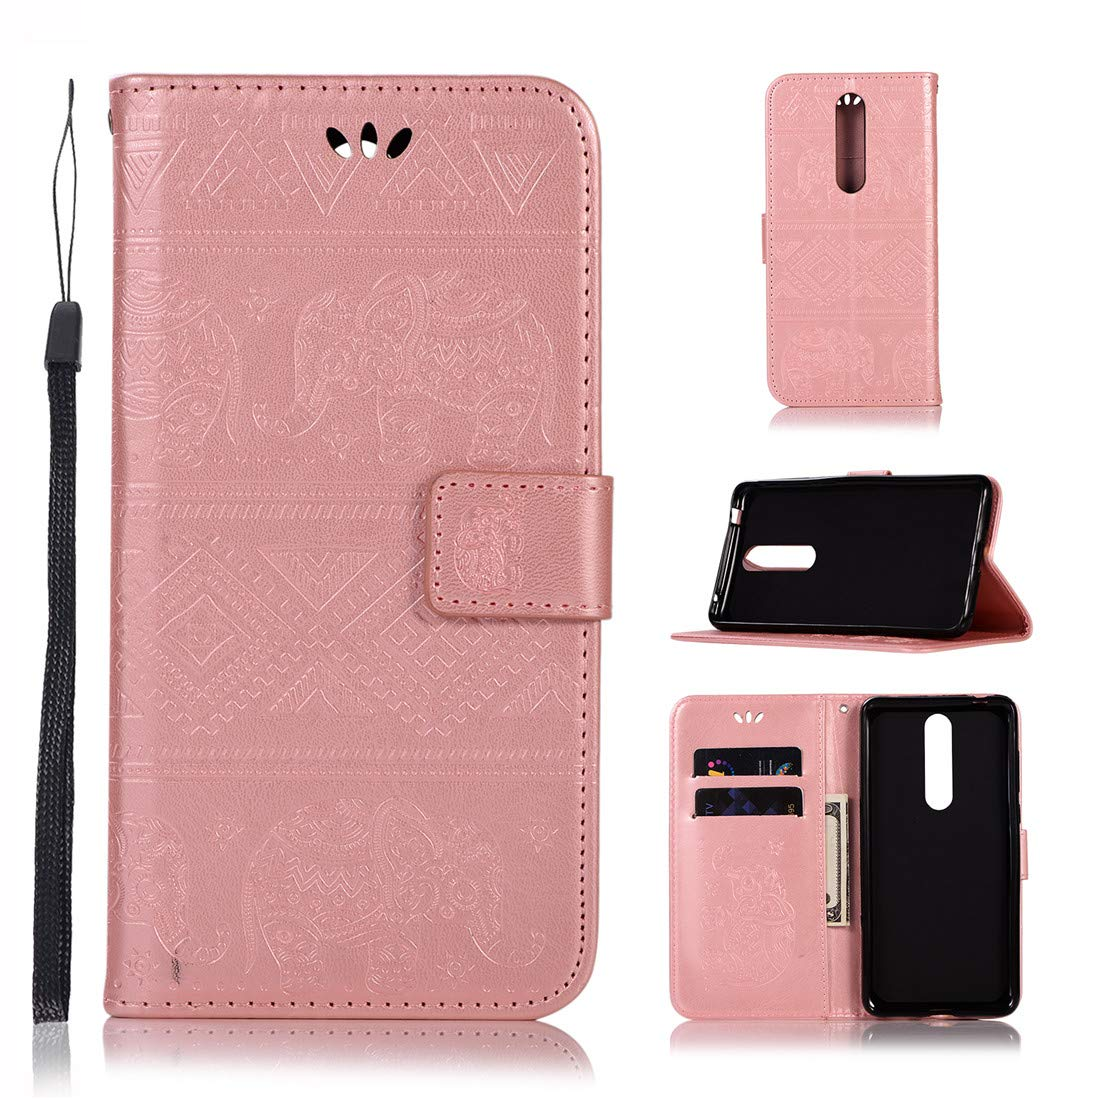 Nokia 3.1 Plus Case, Love Sound [Wrist Strap] [Stand Function] Premium Emboss Elephant PU Leather Wallet Flip Protective Case Cover with Card Slots for Nokia 3.1 Plus 2018, Rose Gold